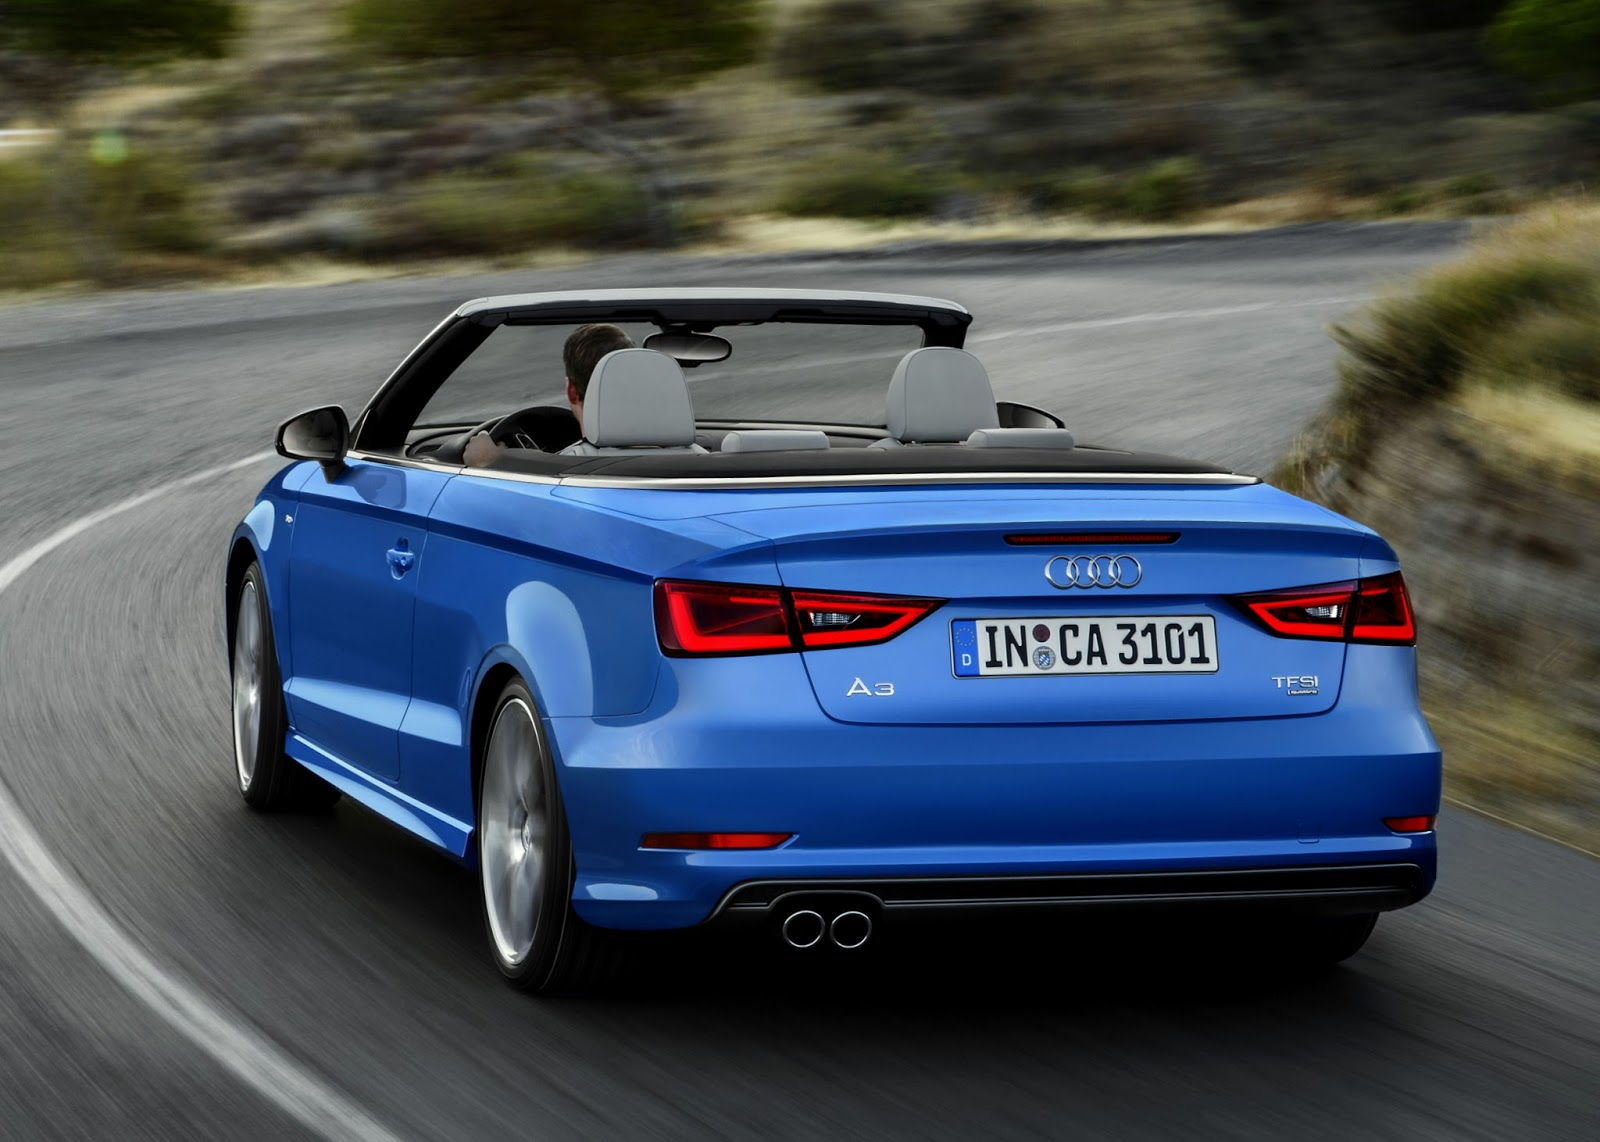 Press release sporty elegant and compact the new audi a3 cabriolet